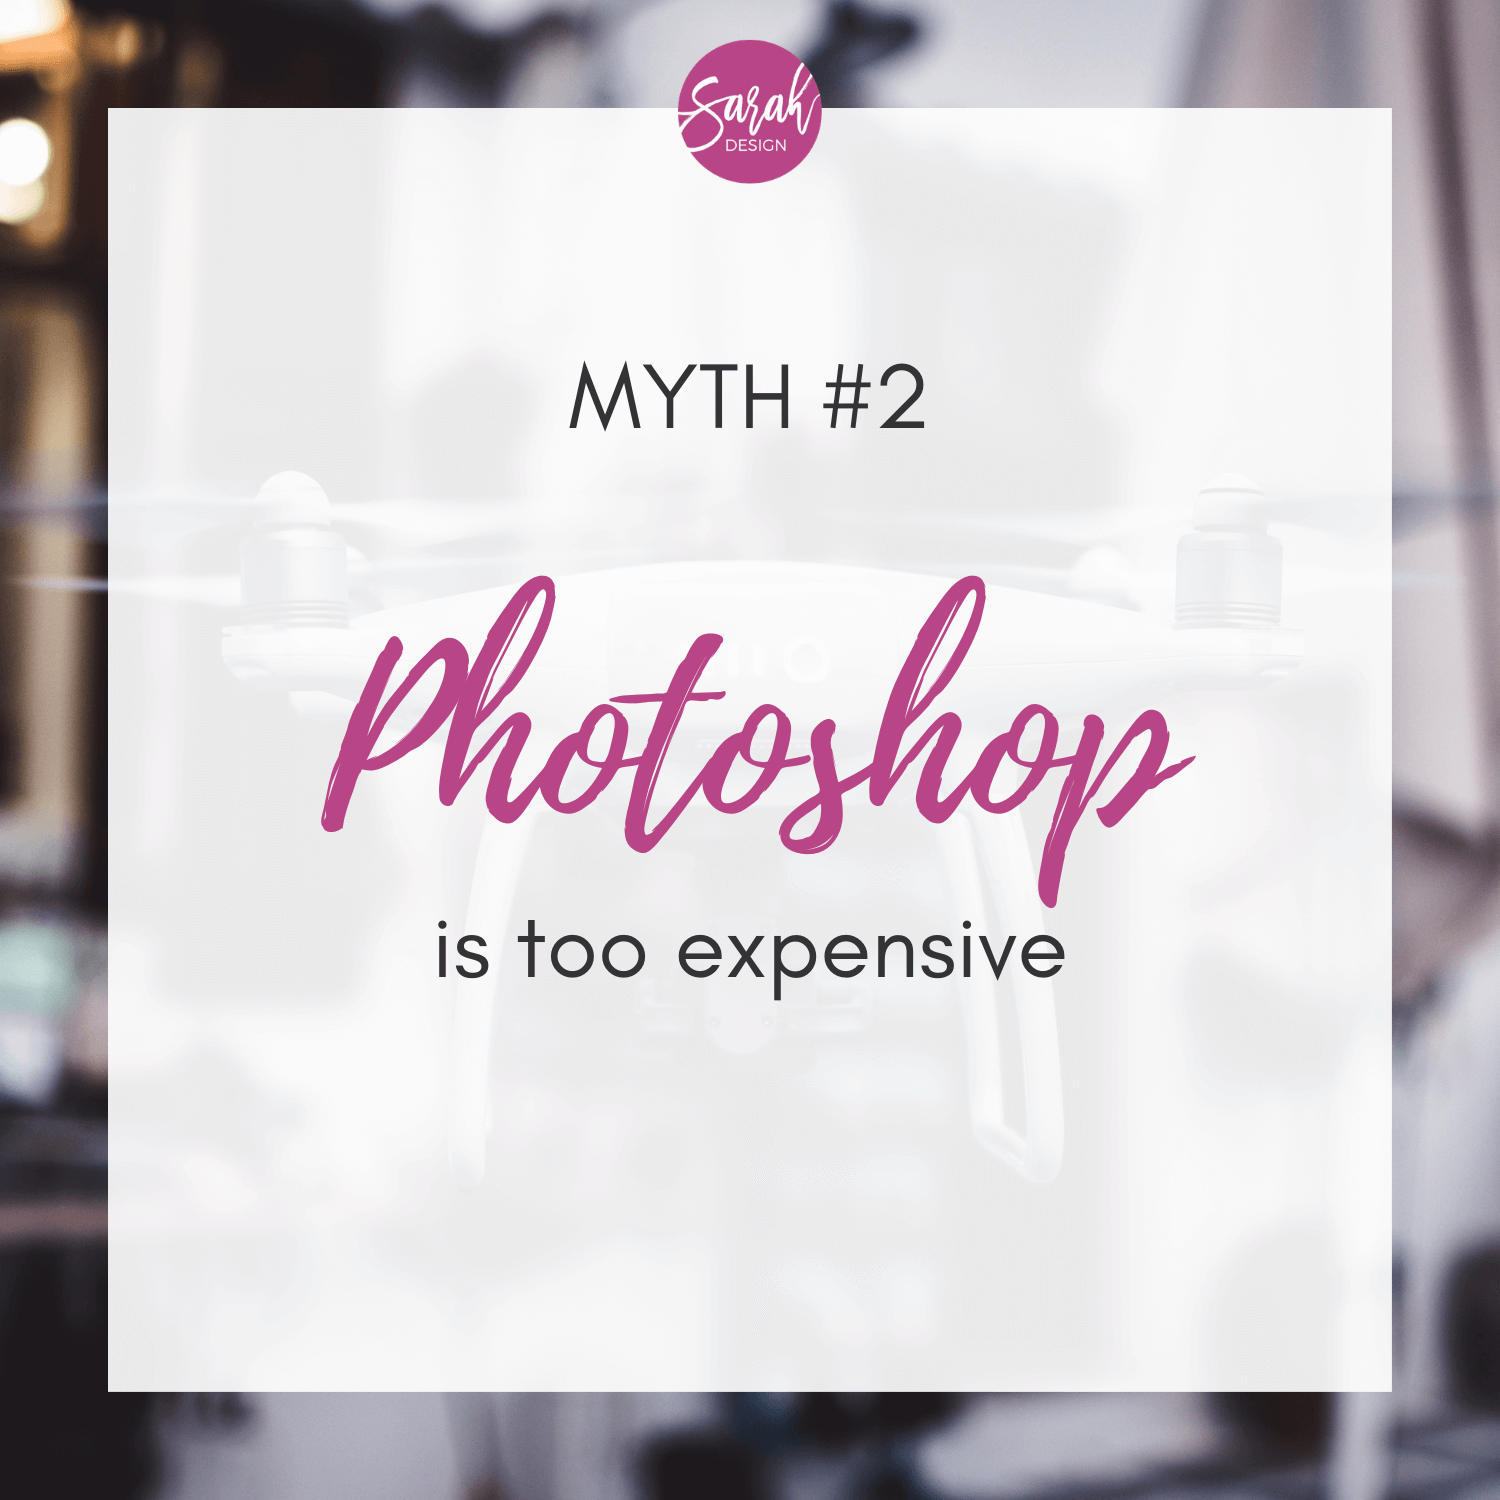 Myth: Photoshop is too expensive - I can't afford it! By SarahDesign.com.